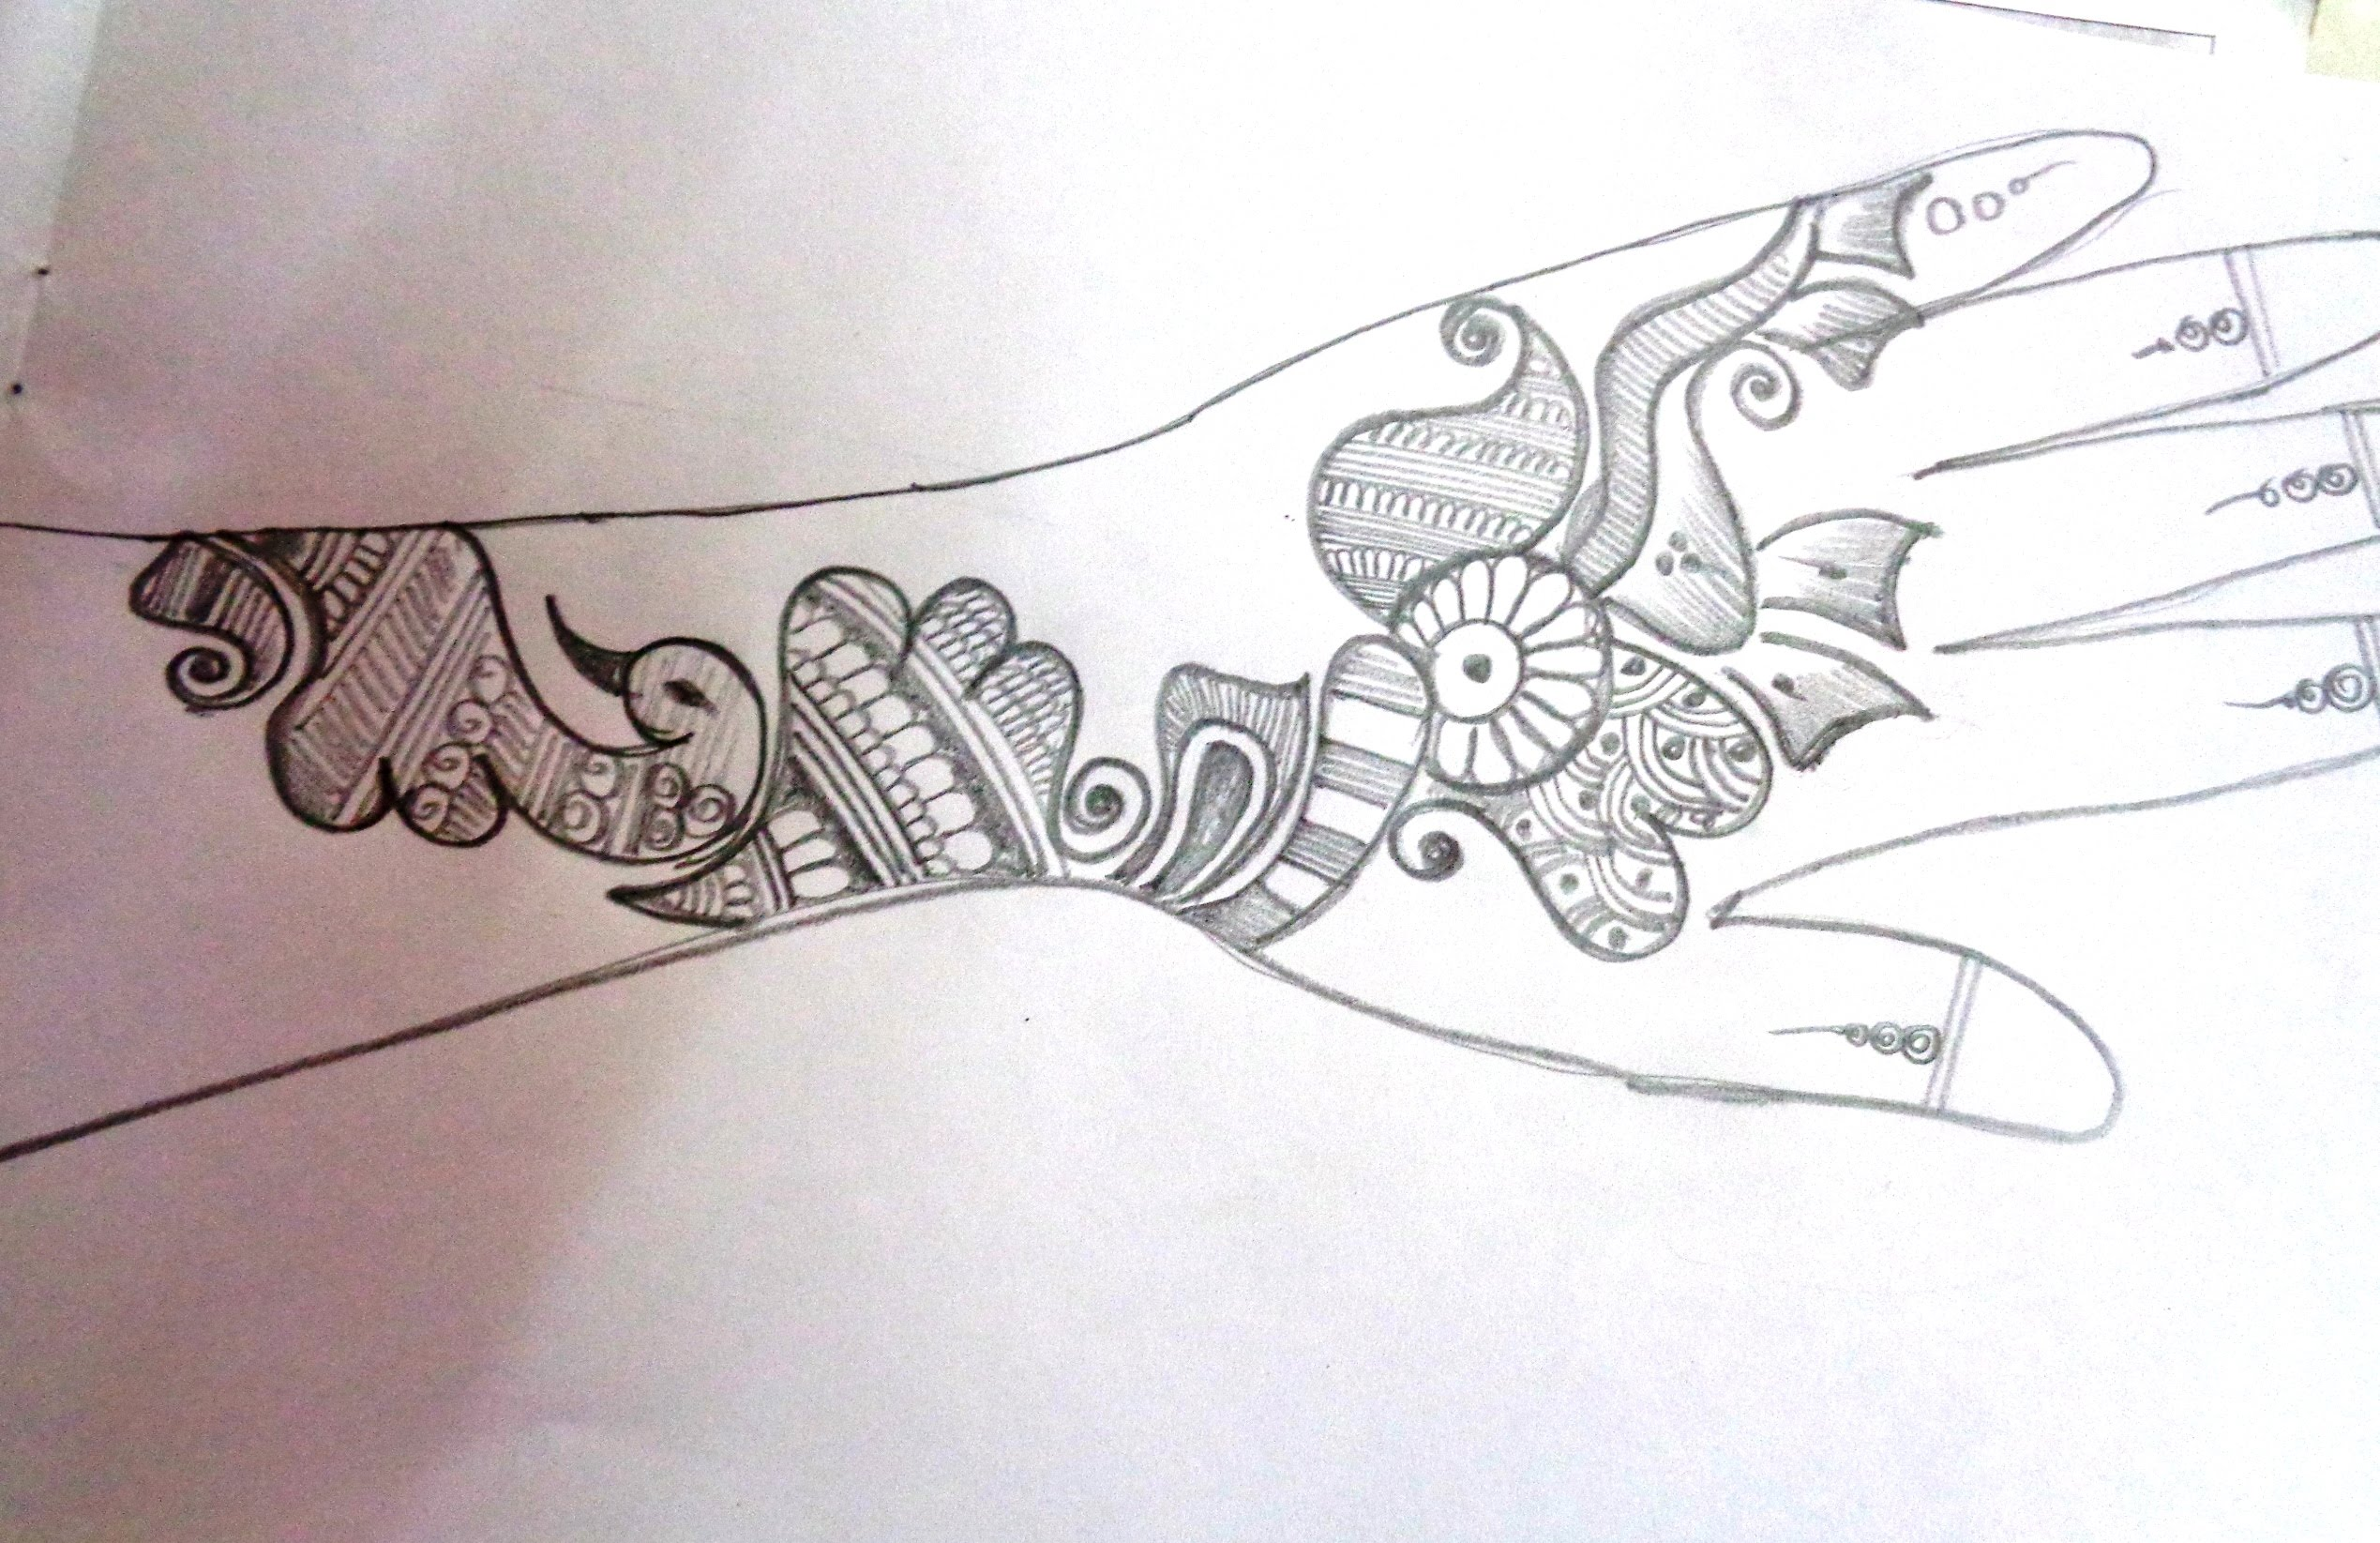 2538x1645 How To Draw A Mehndihenna Design On Paper